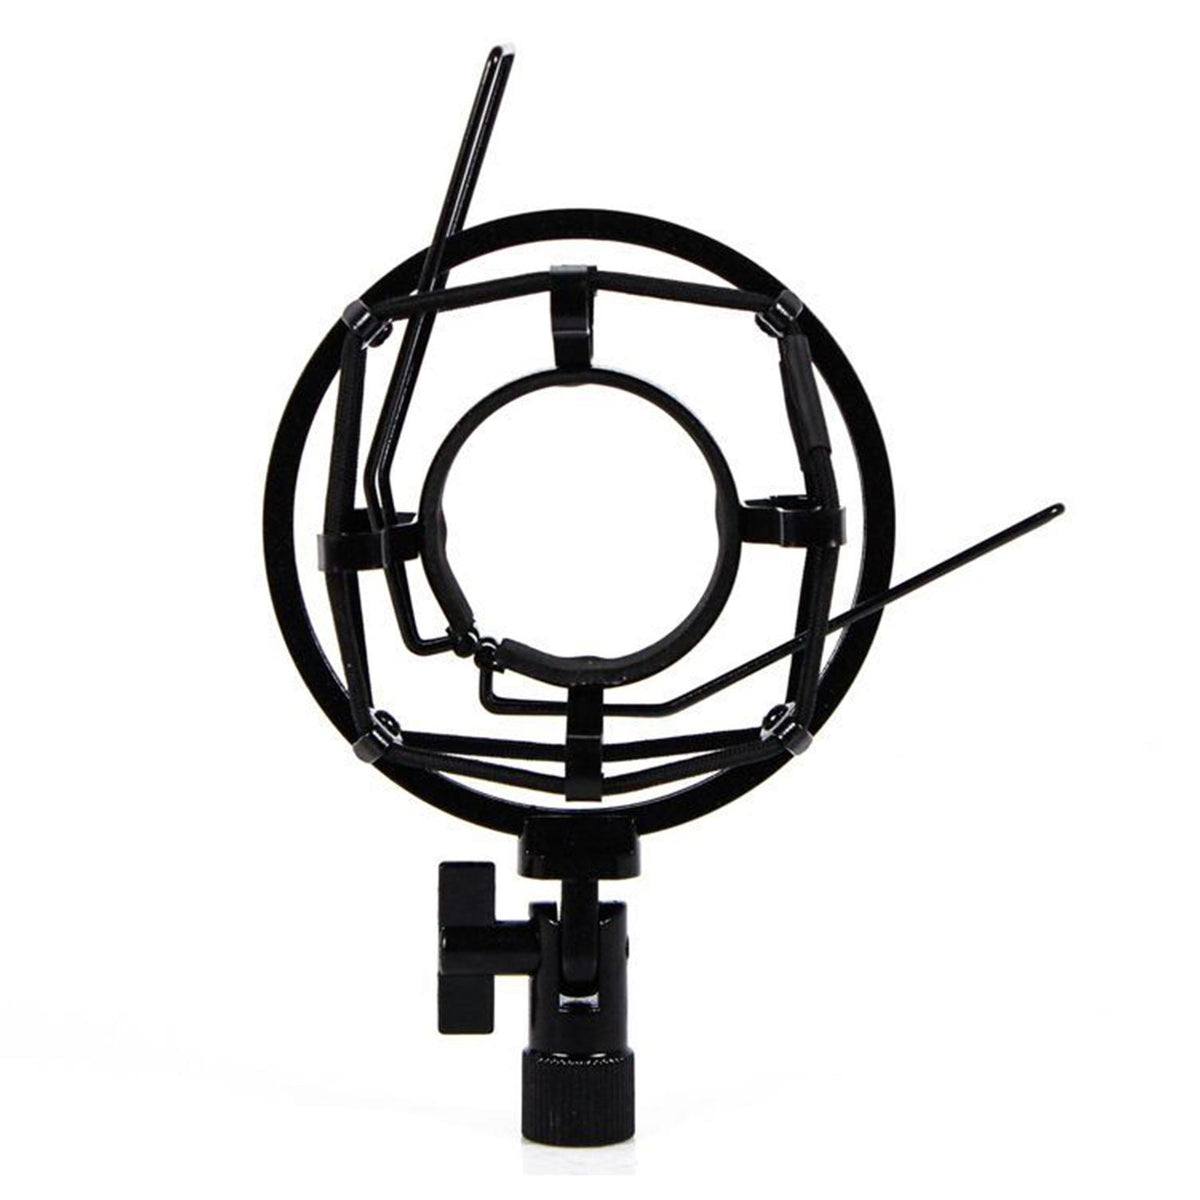 Black Shock Mount for AKG C3000 Microphone